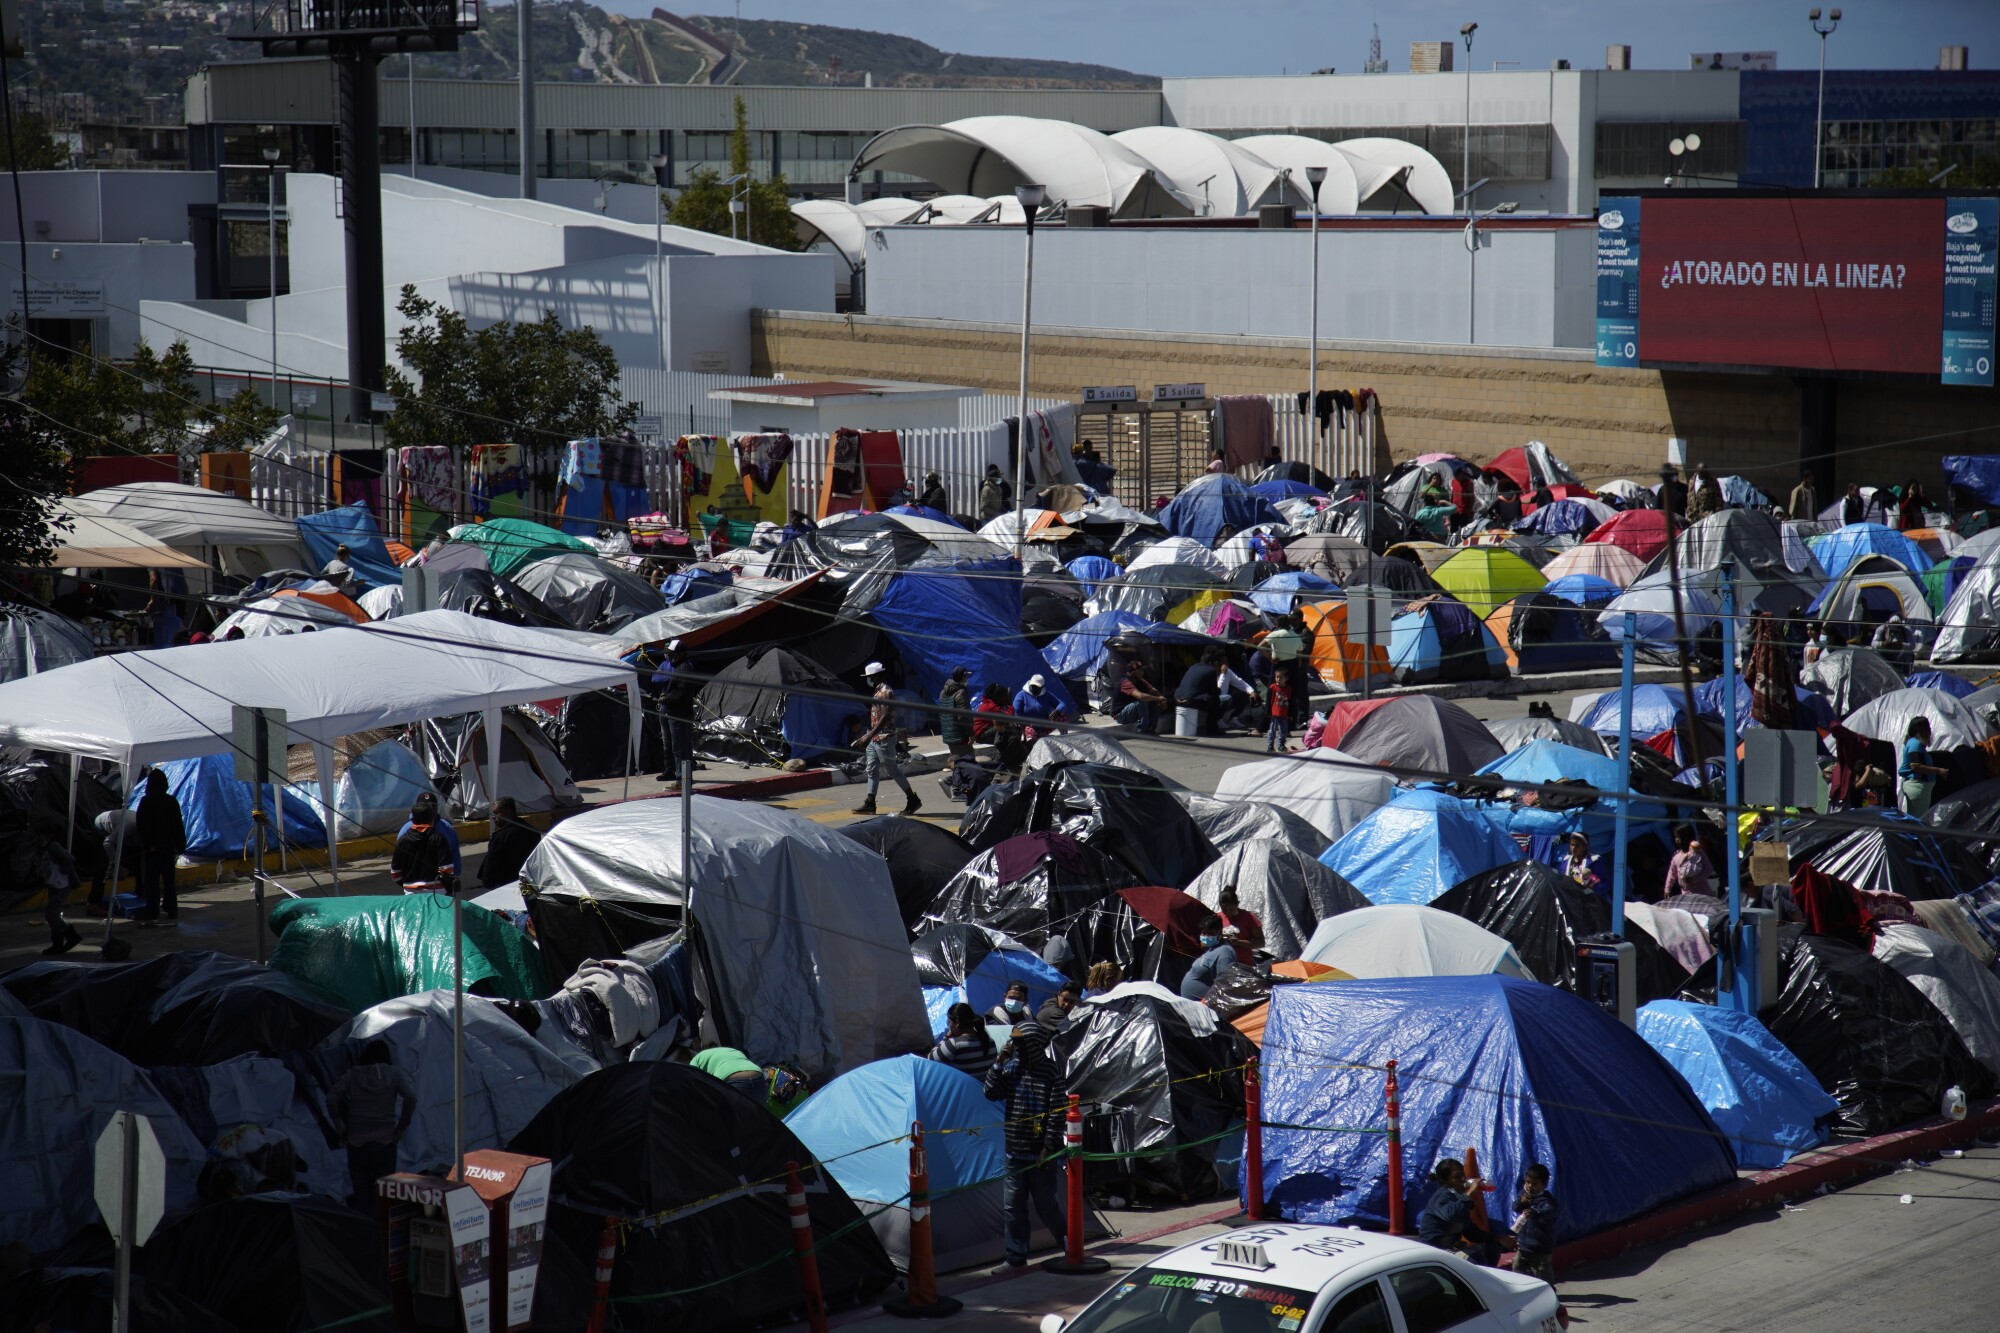 Hundreds of asylum seekers have set up camp by the port of entry at Tijuana's Chaparral plaza.